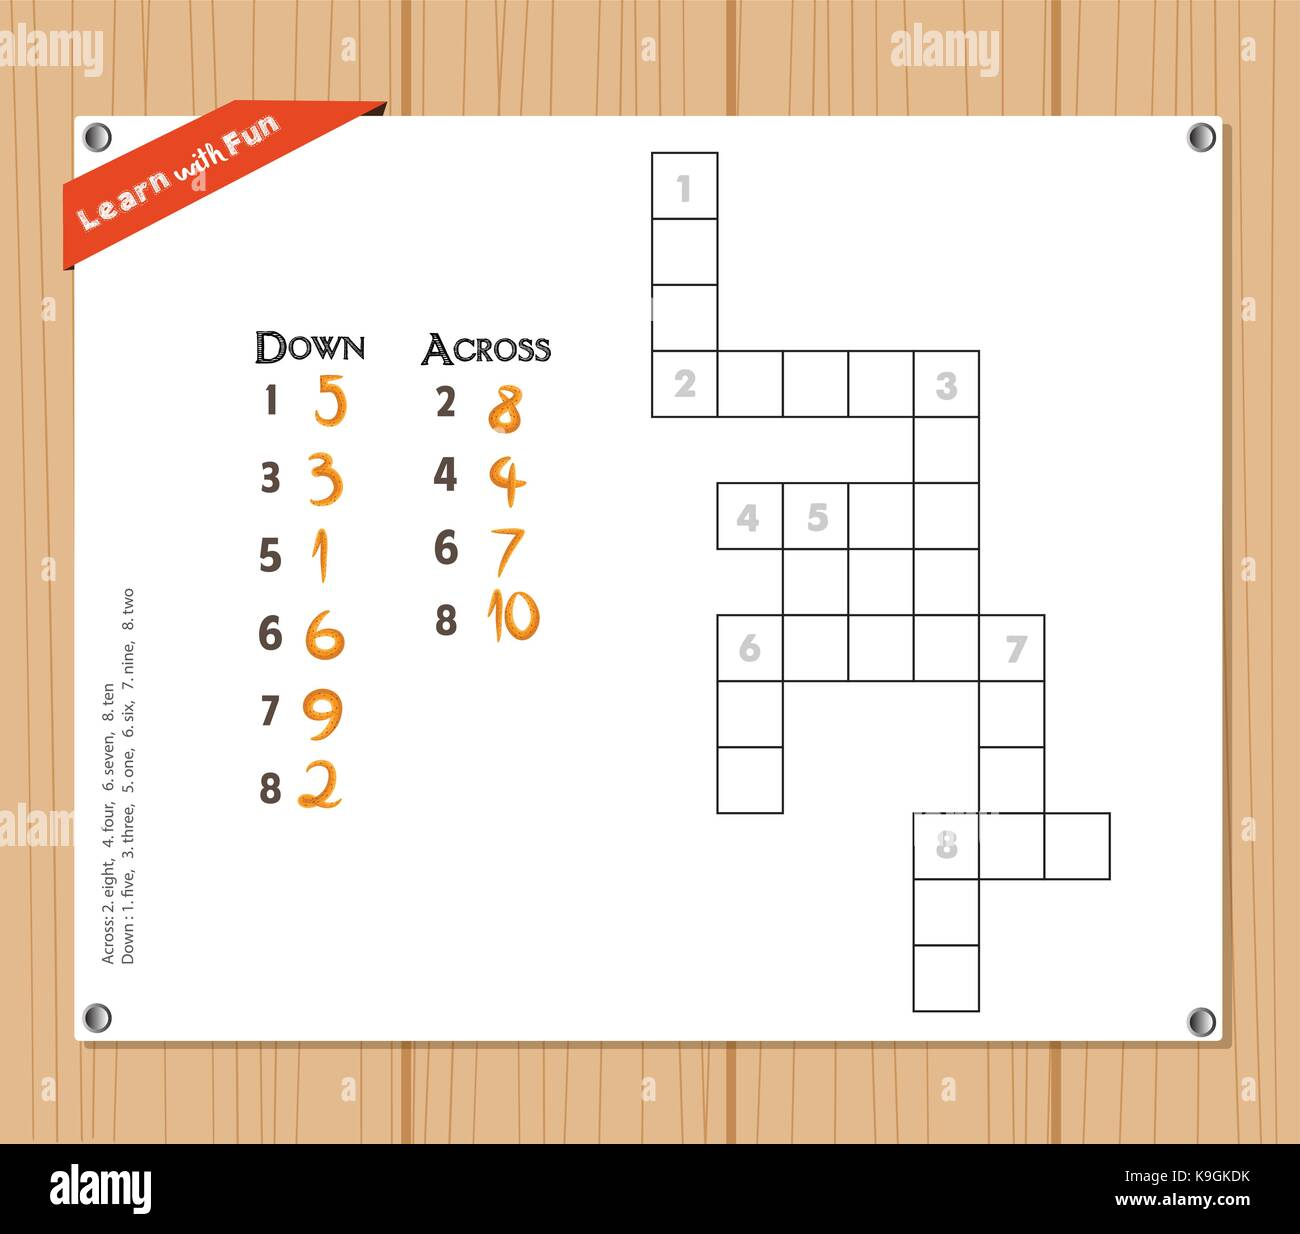 Crossword Puzzle Stock Vector Images